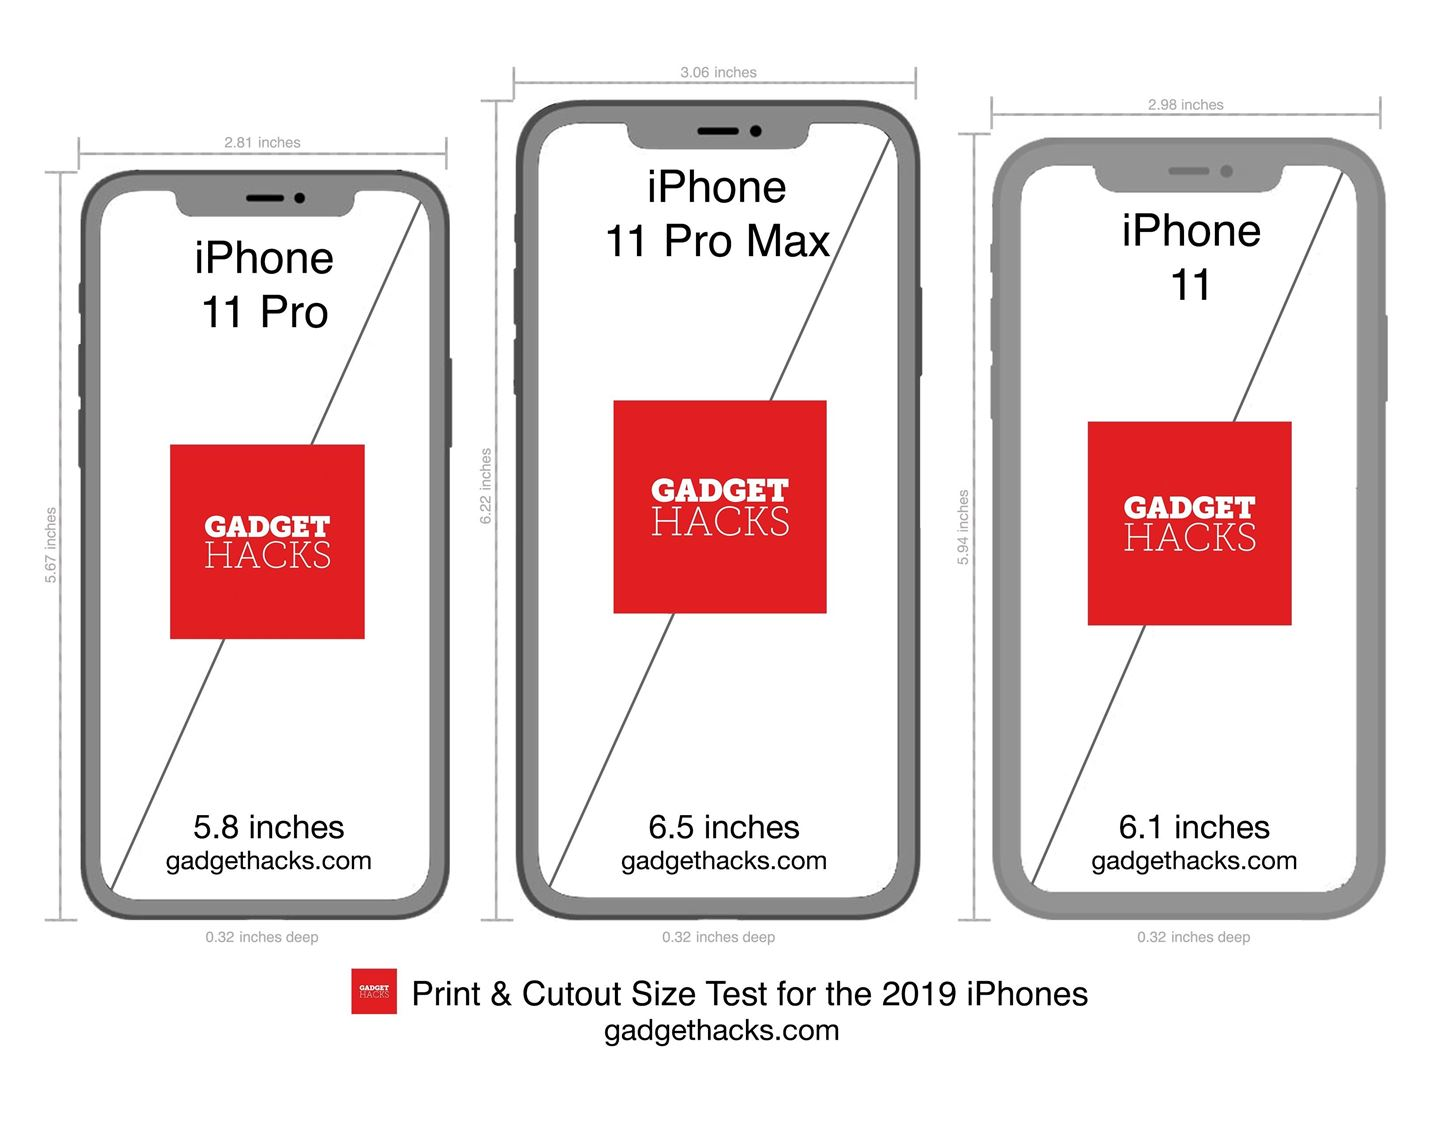 Printable iPhone 11, 11 Pro & 11 Pro Max Cutouts — See Which Size Is Right for You